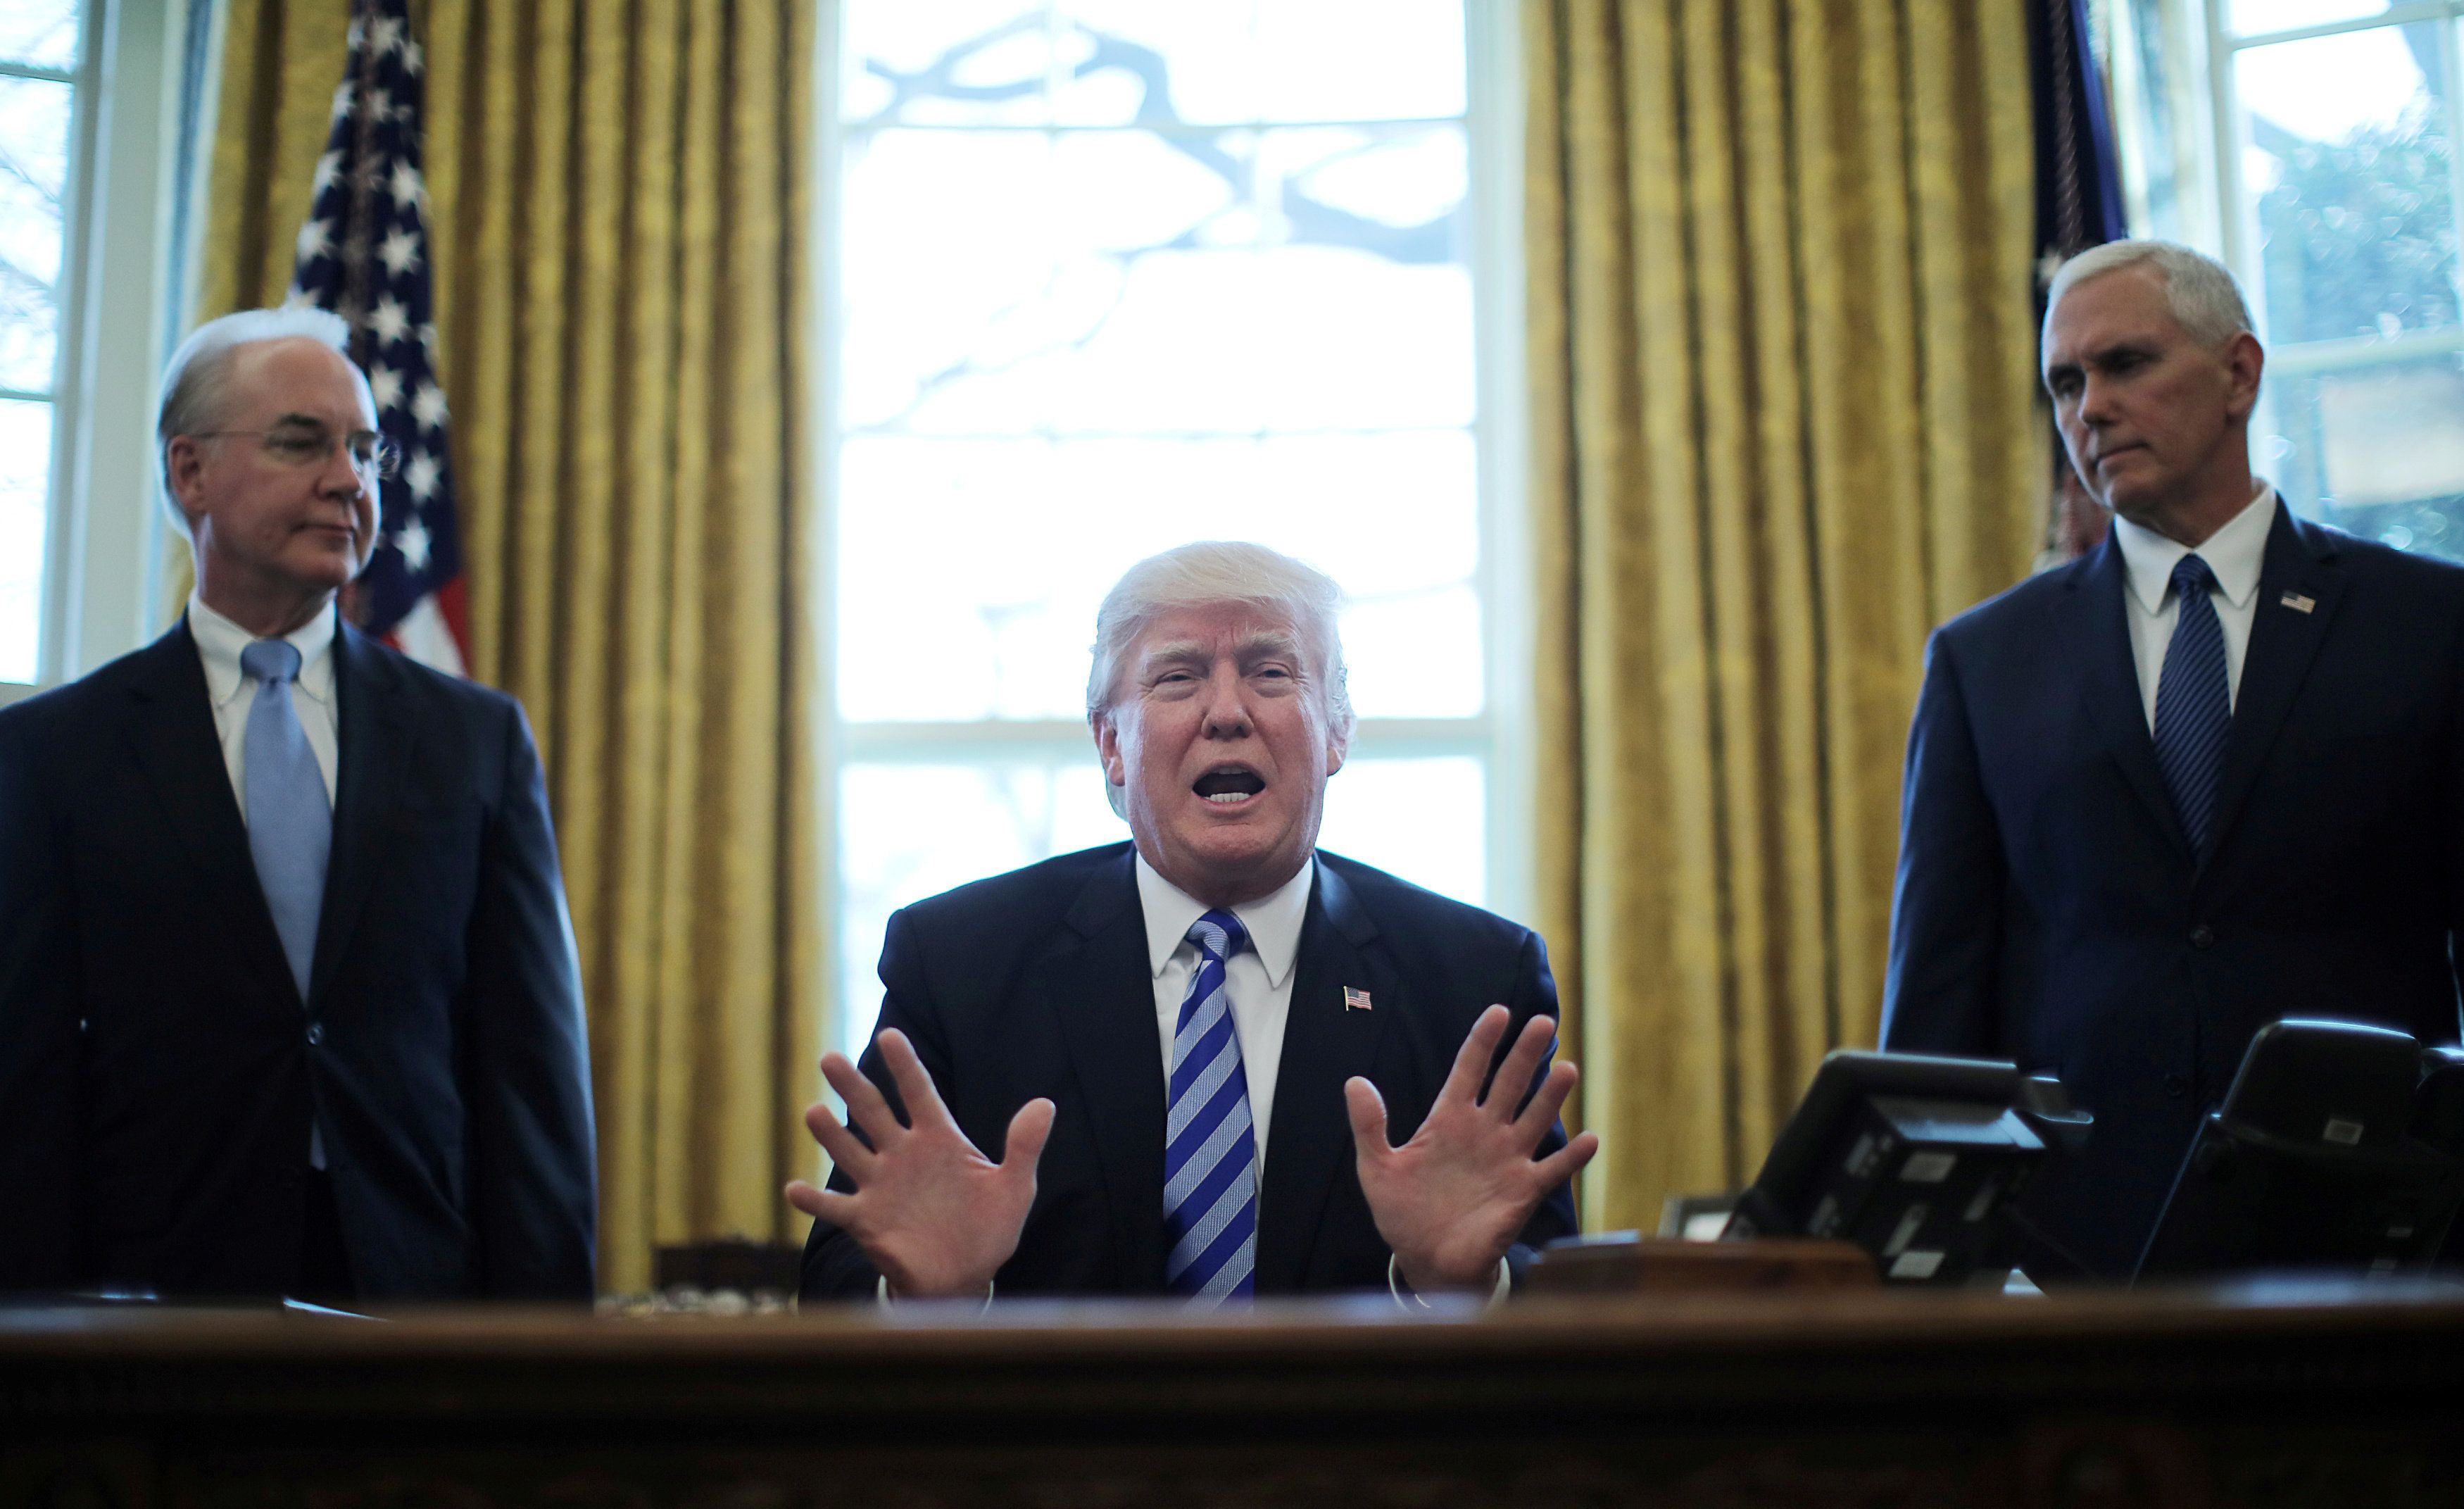 President Donald Trump (center) sits with Secretary of Health and Human Services Tom Price (left) and Vice President Mik